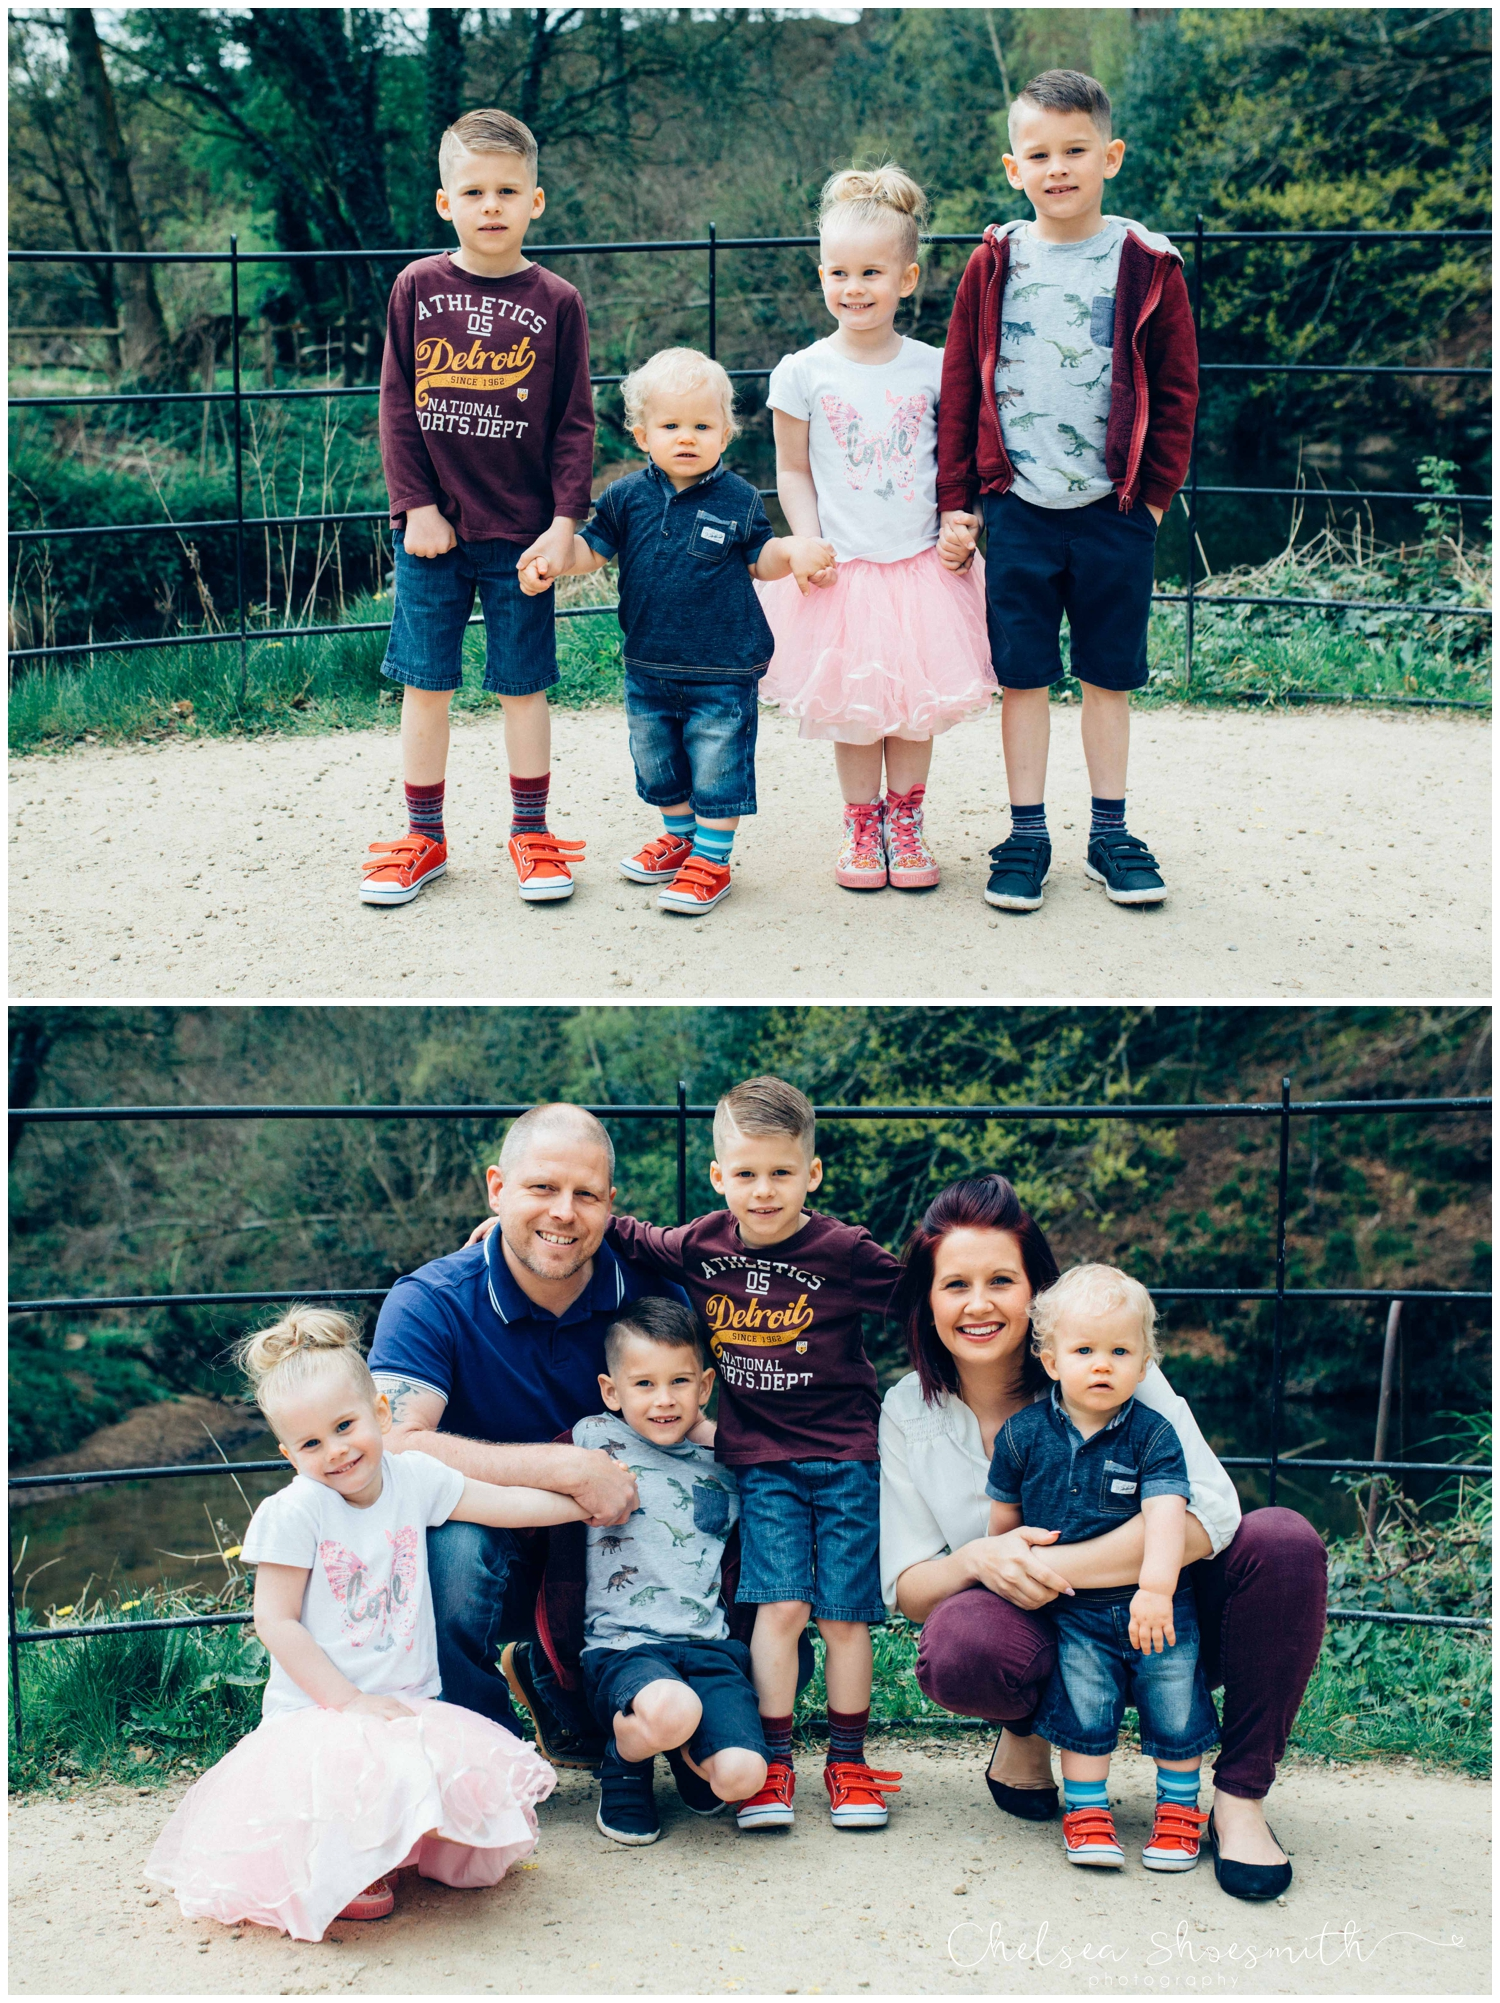 (3 of 72) Rigby Family Portrait Photography Quarry Bank Mill Styal Chelsea Shoesmith photography